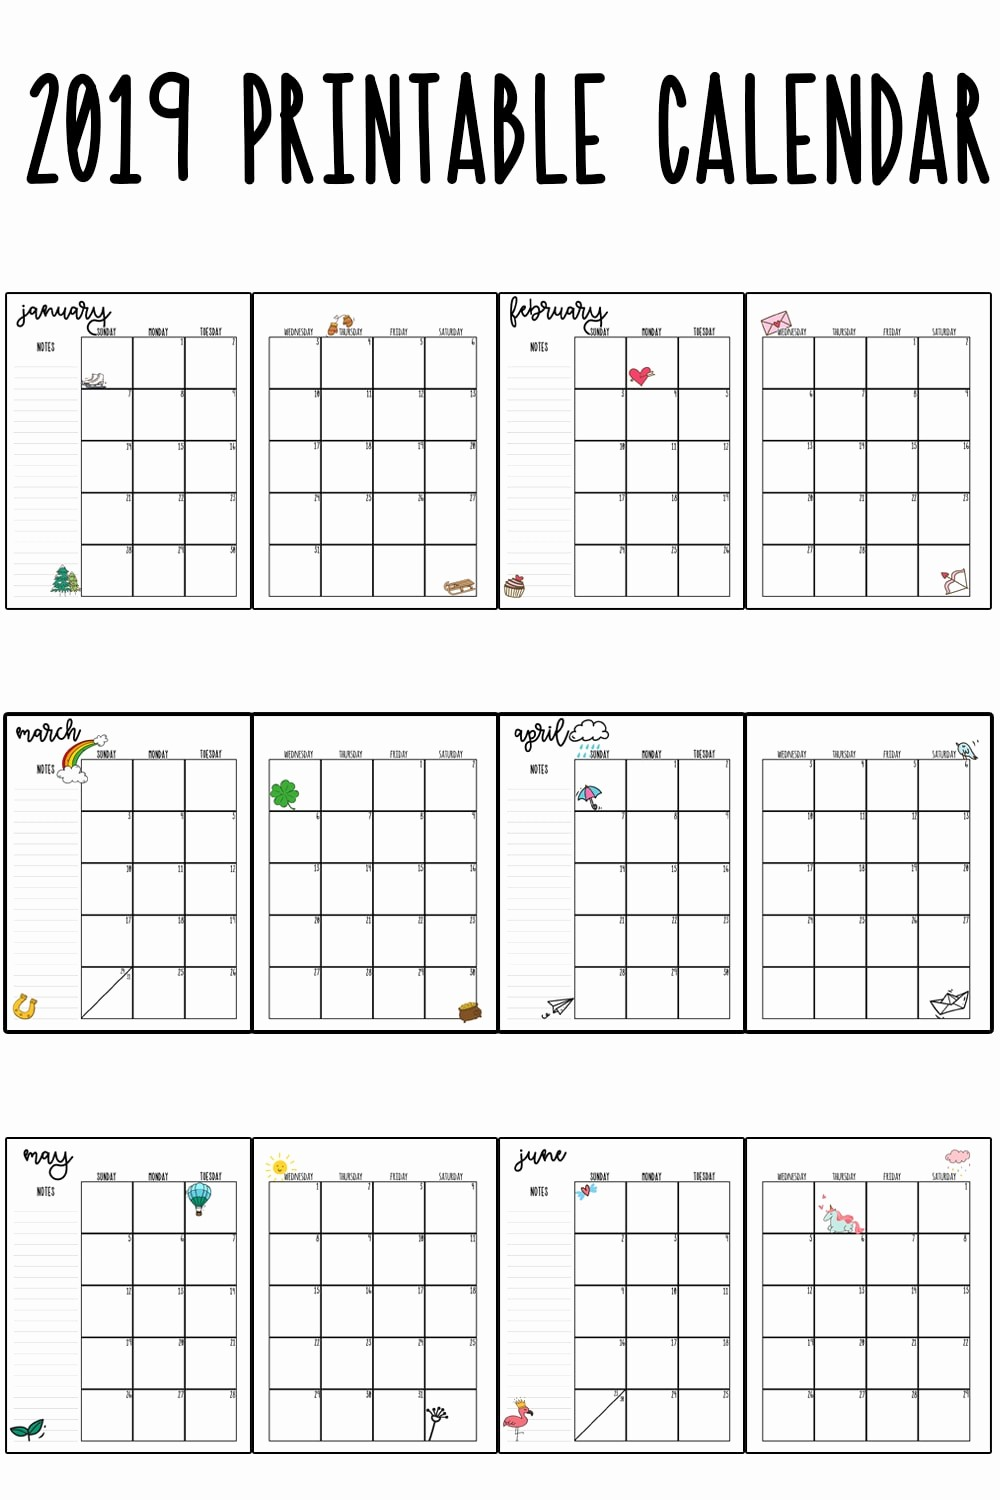 Free Printable 2019 Yearly Calendar Elegant 2019 Printable Calendar